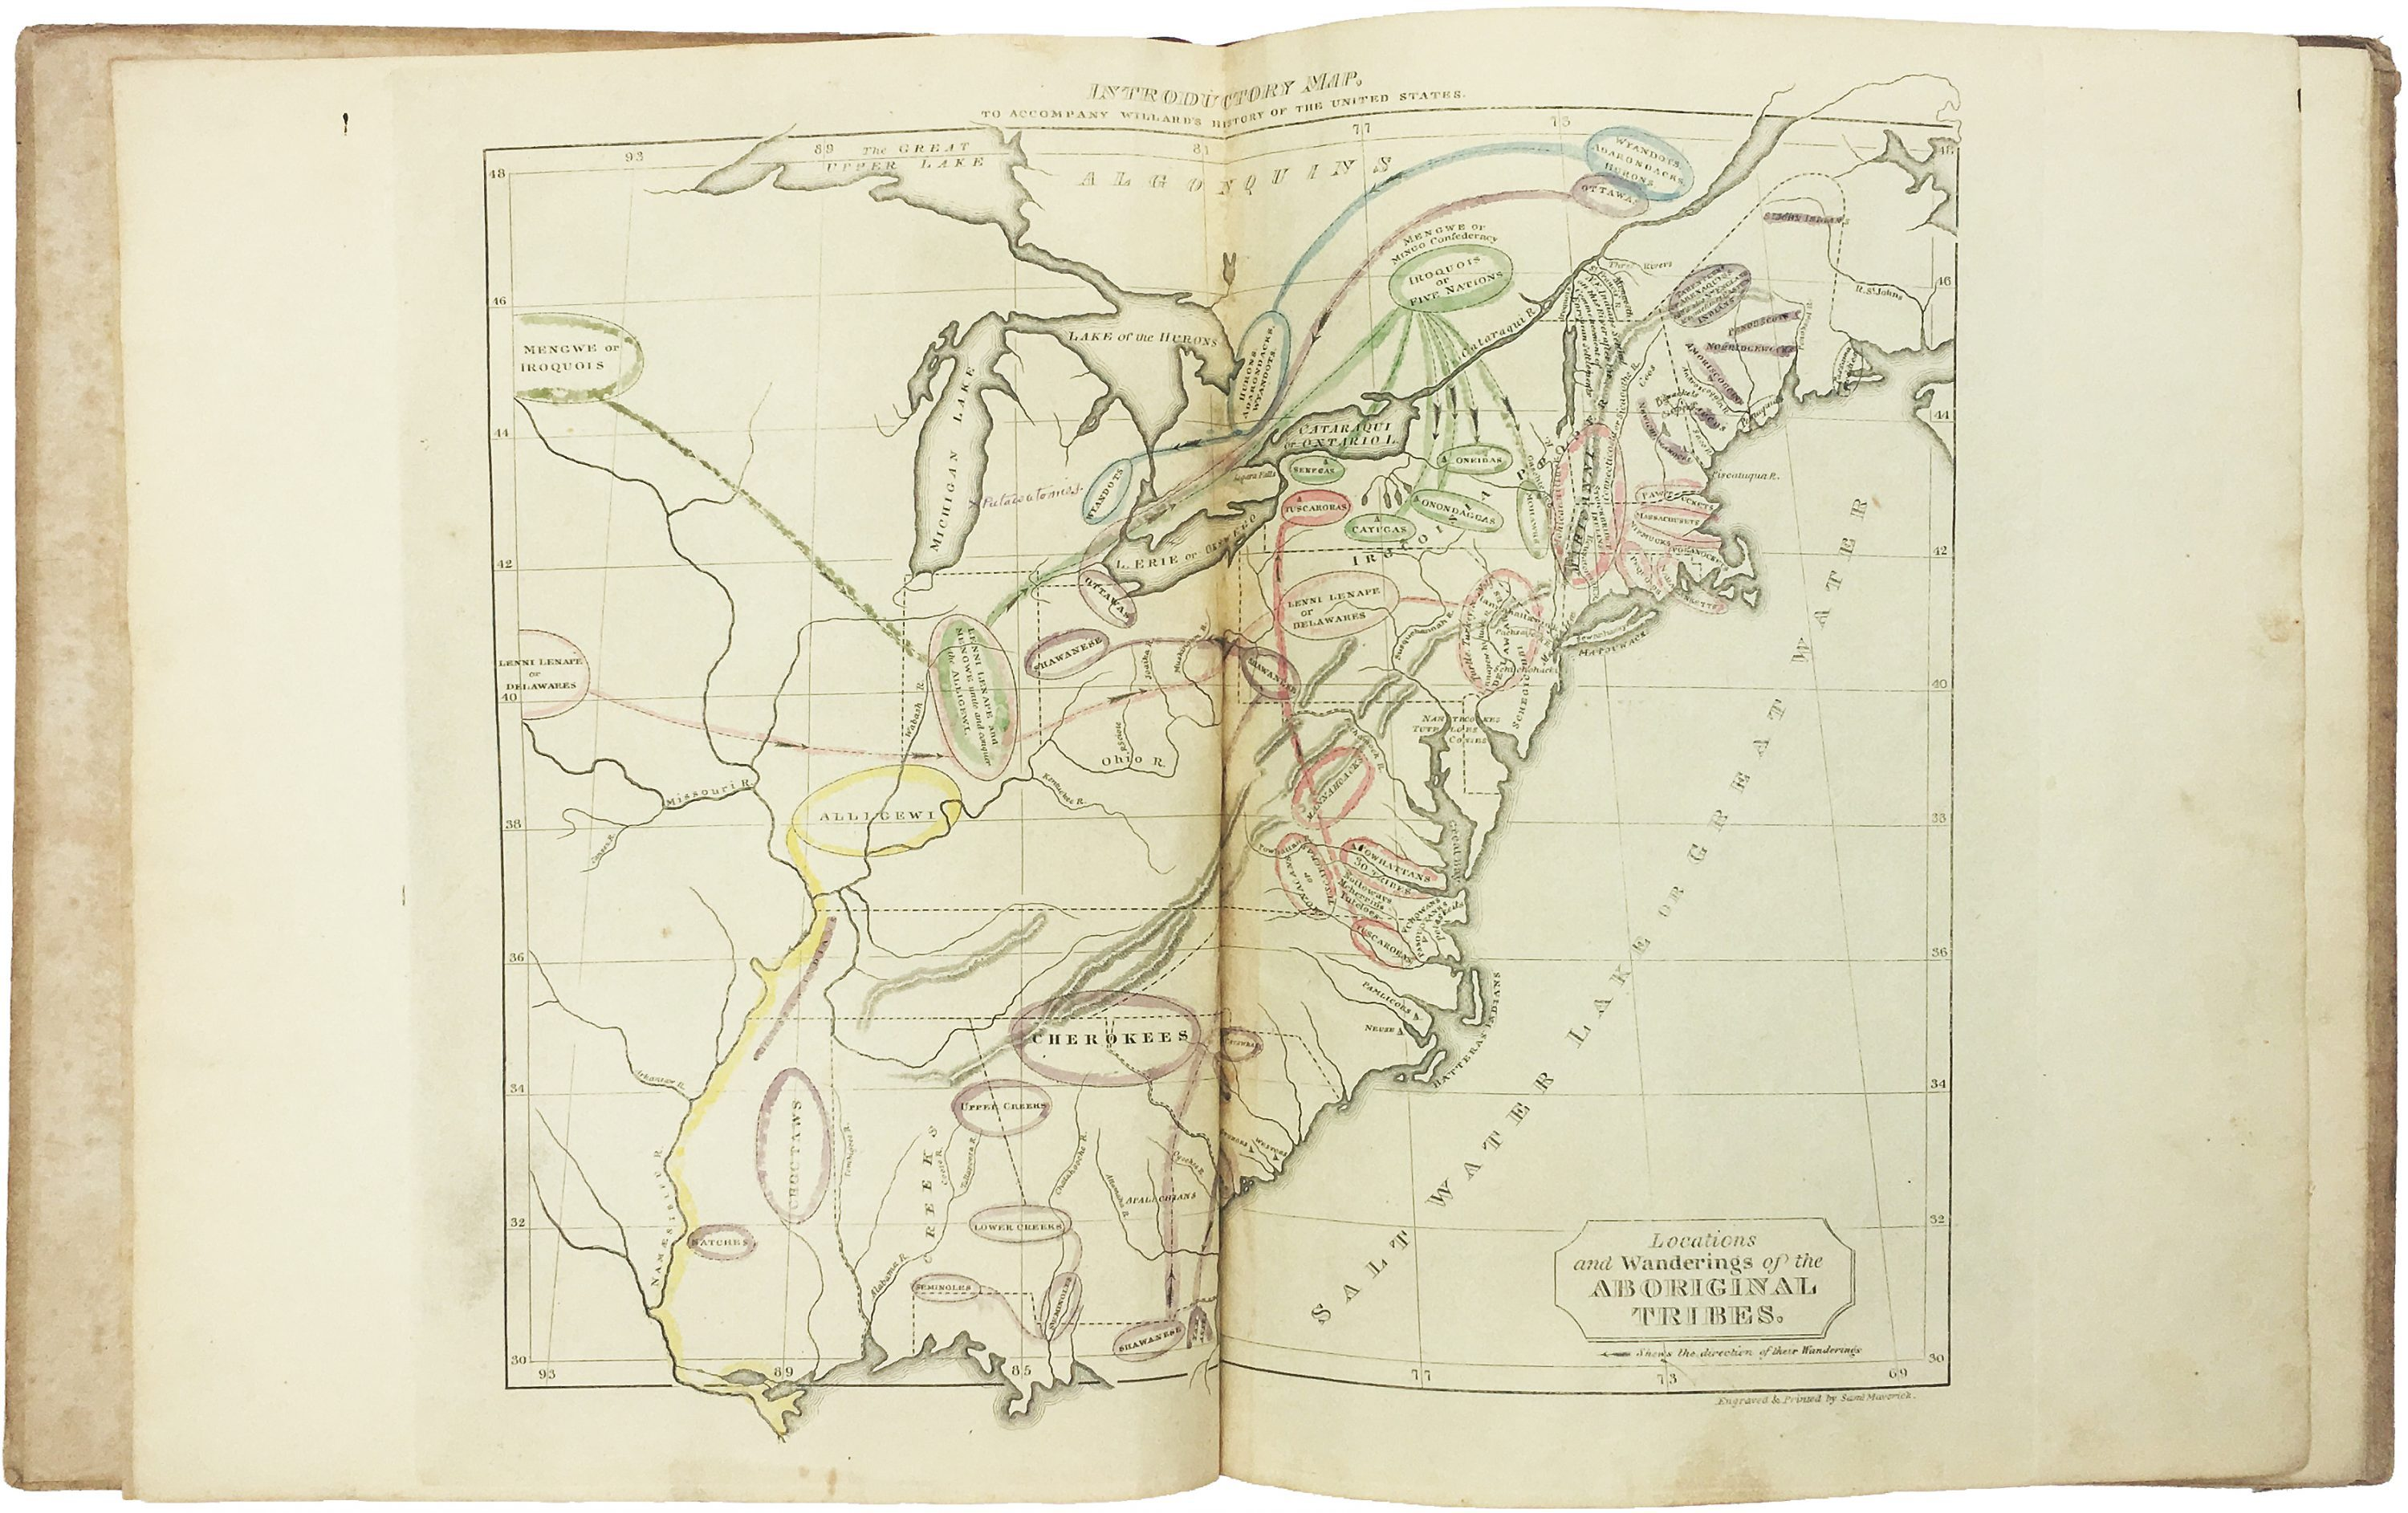 A landmark historical atlas by Emma Willard, America's first ... on map paul, yahoo! maps, google moon, map house, map marker, map case, map company, map of a gazelle, web mapping, map light, map street usa google texas viewgroves, map of destruction of usa, google patents, map of heaven, zygote body, google grants, map mark, map of my own country, map tiles, map holder, google wallet, google sync, map united interstate highway, map machine, map mall, map maze, map app, google custom search, google maps, map pin icon,